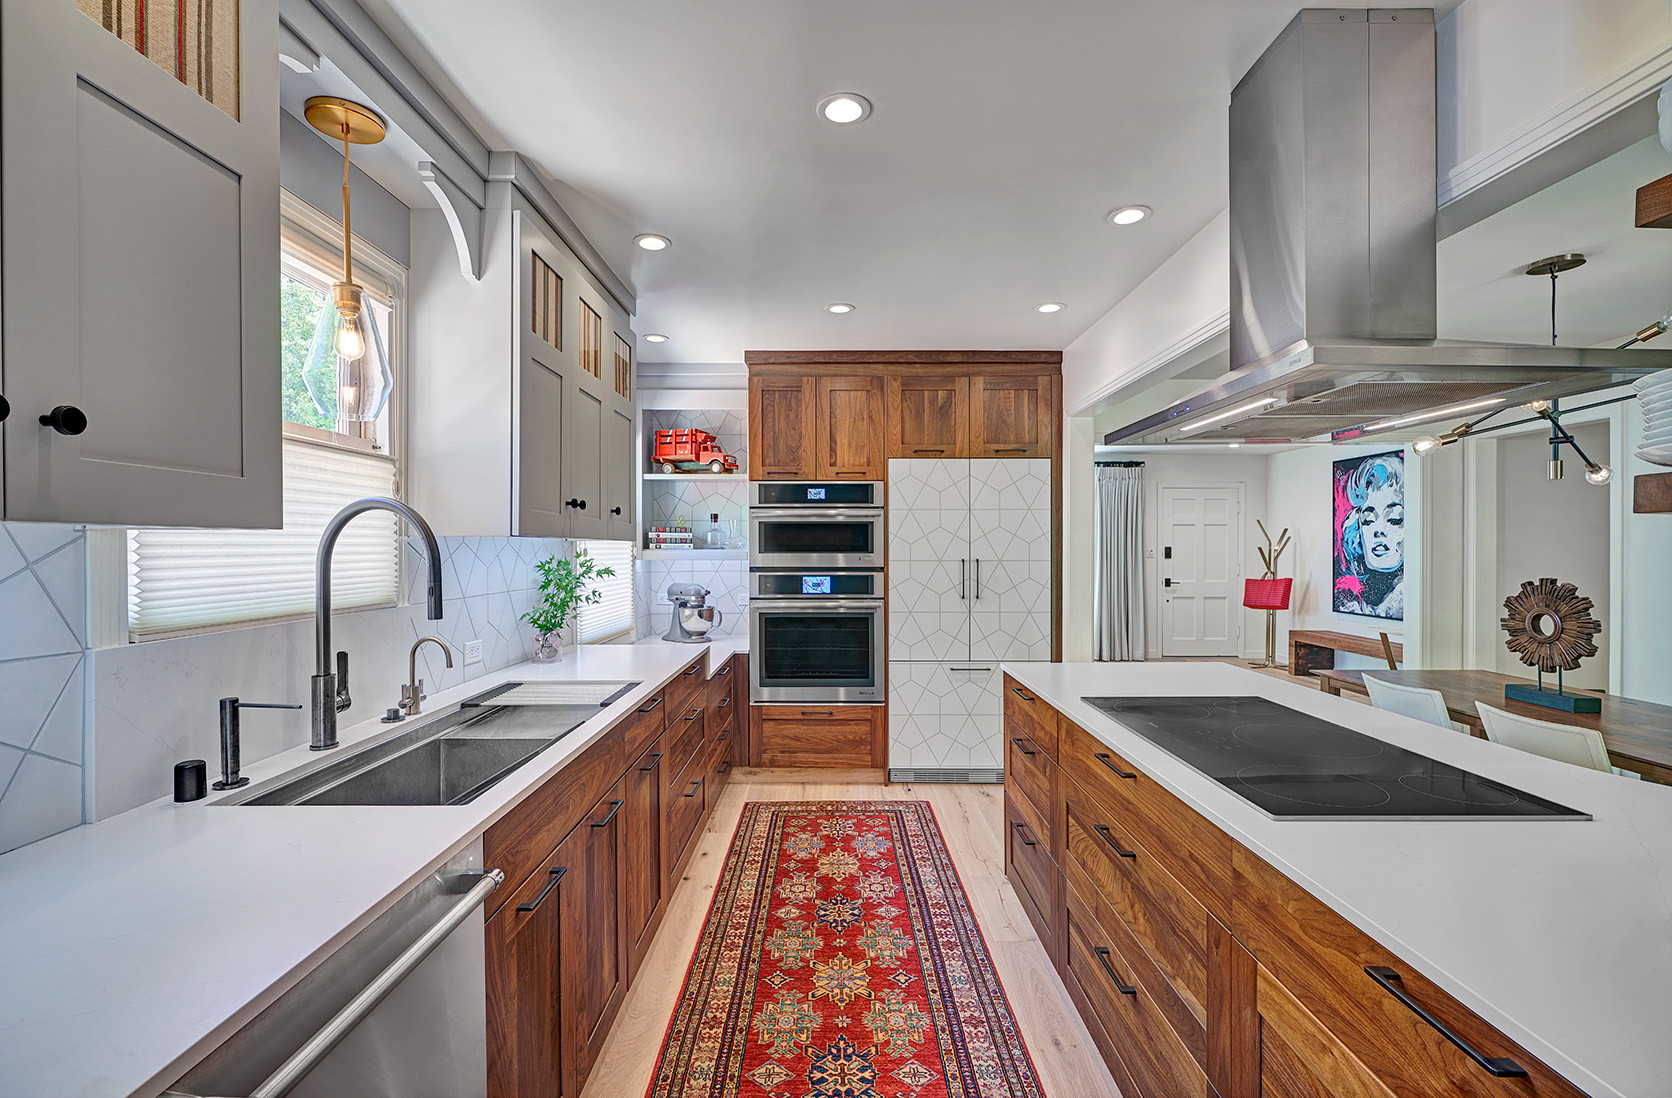 75 Beautiful Kitchen Pictures Ideas February 2021 Houzz